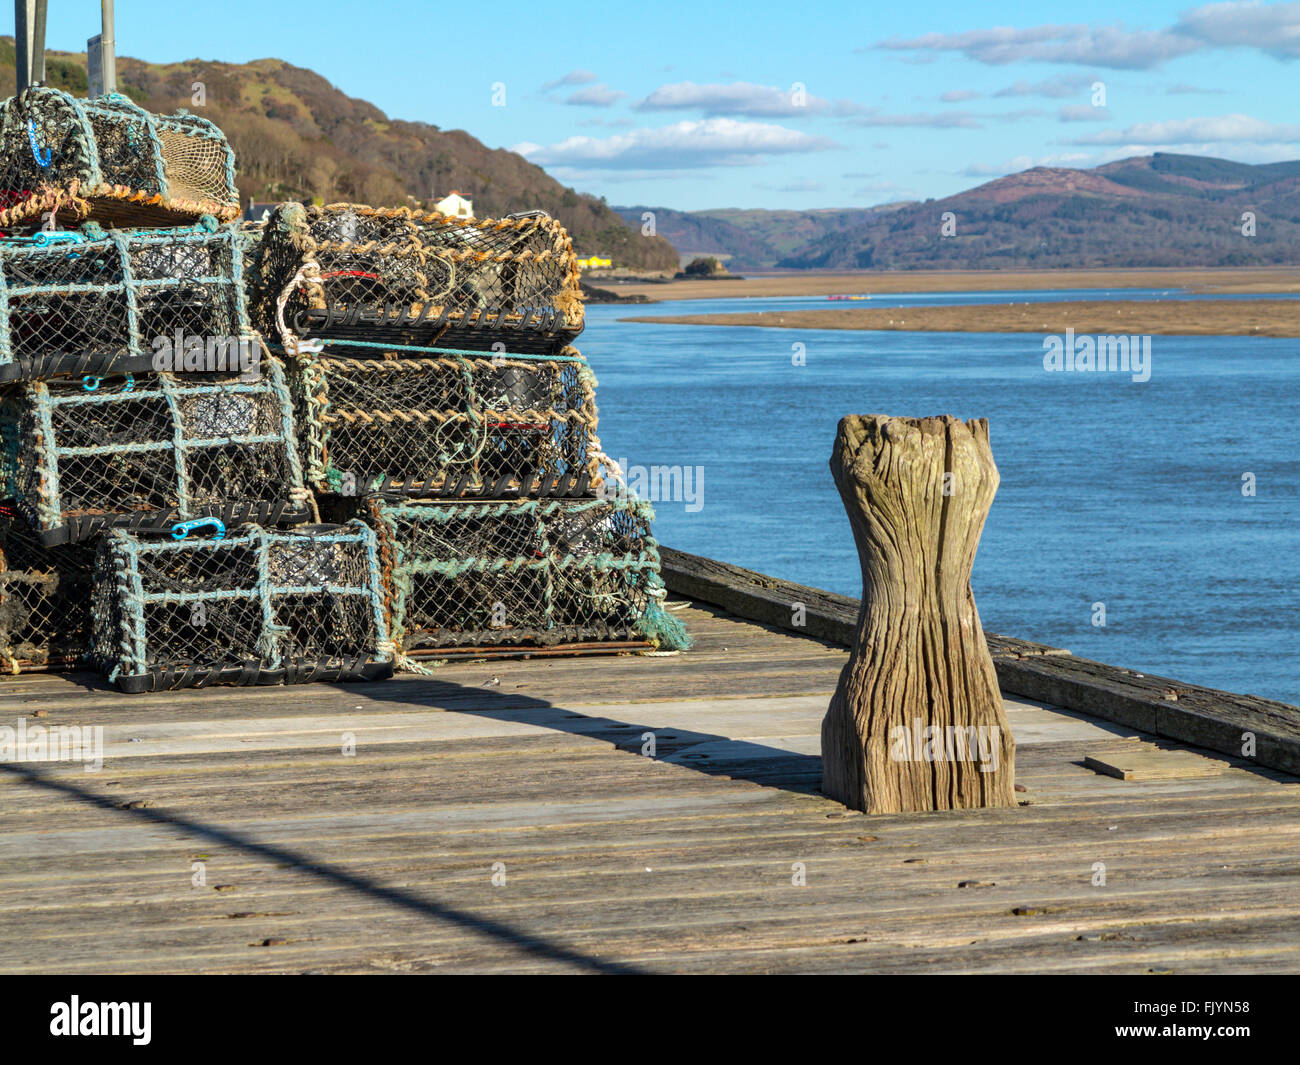 Old wooden bollard on a jetty near lobster pots and the distant wooded mountainsides of the Dyfi estuary. - Stock Image